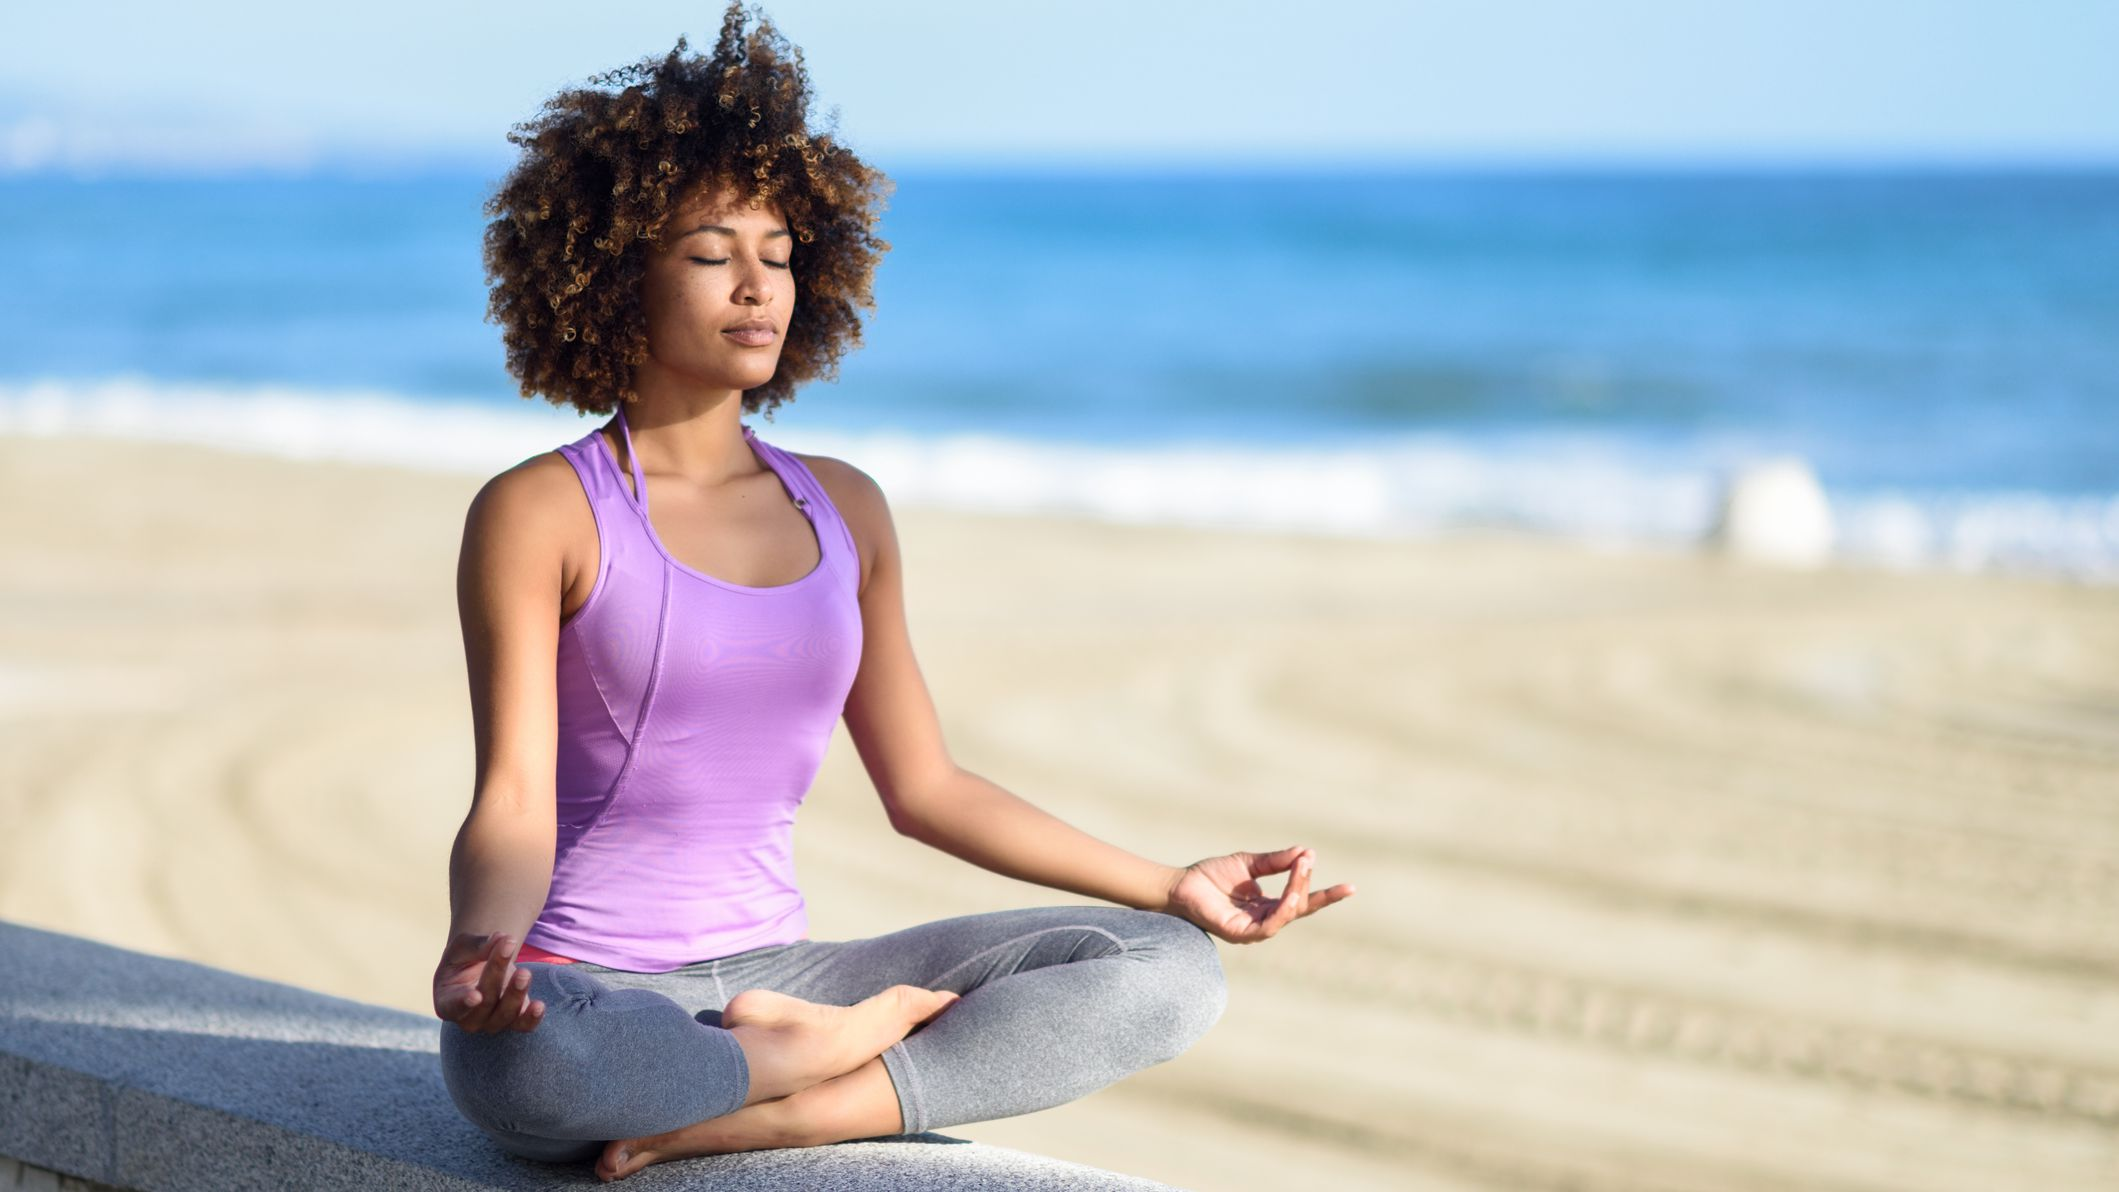 The Types and Benefits of Meditation